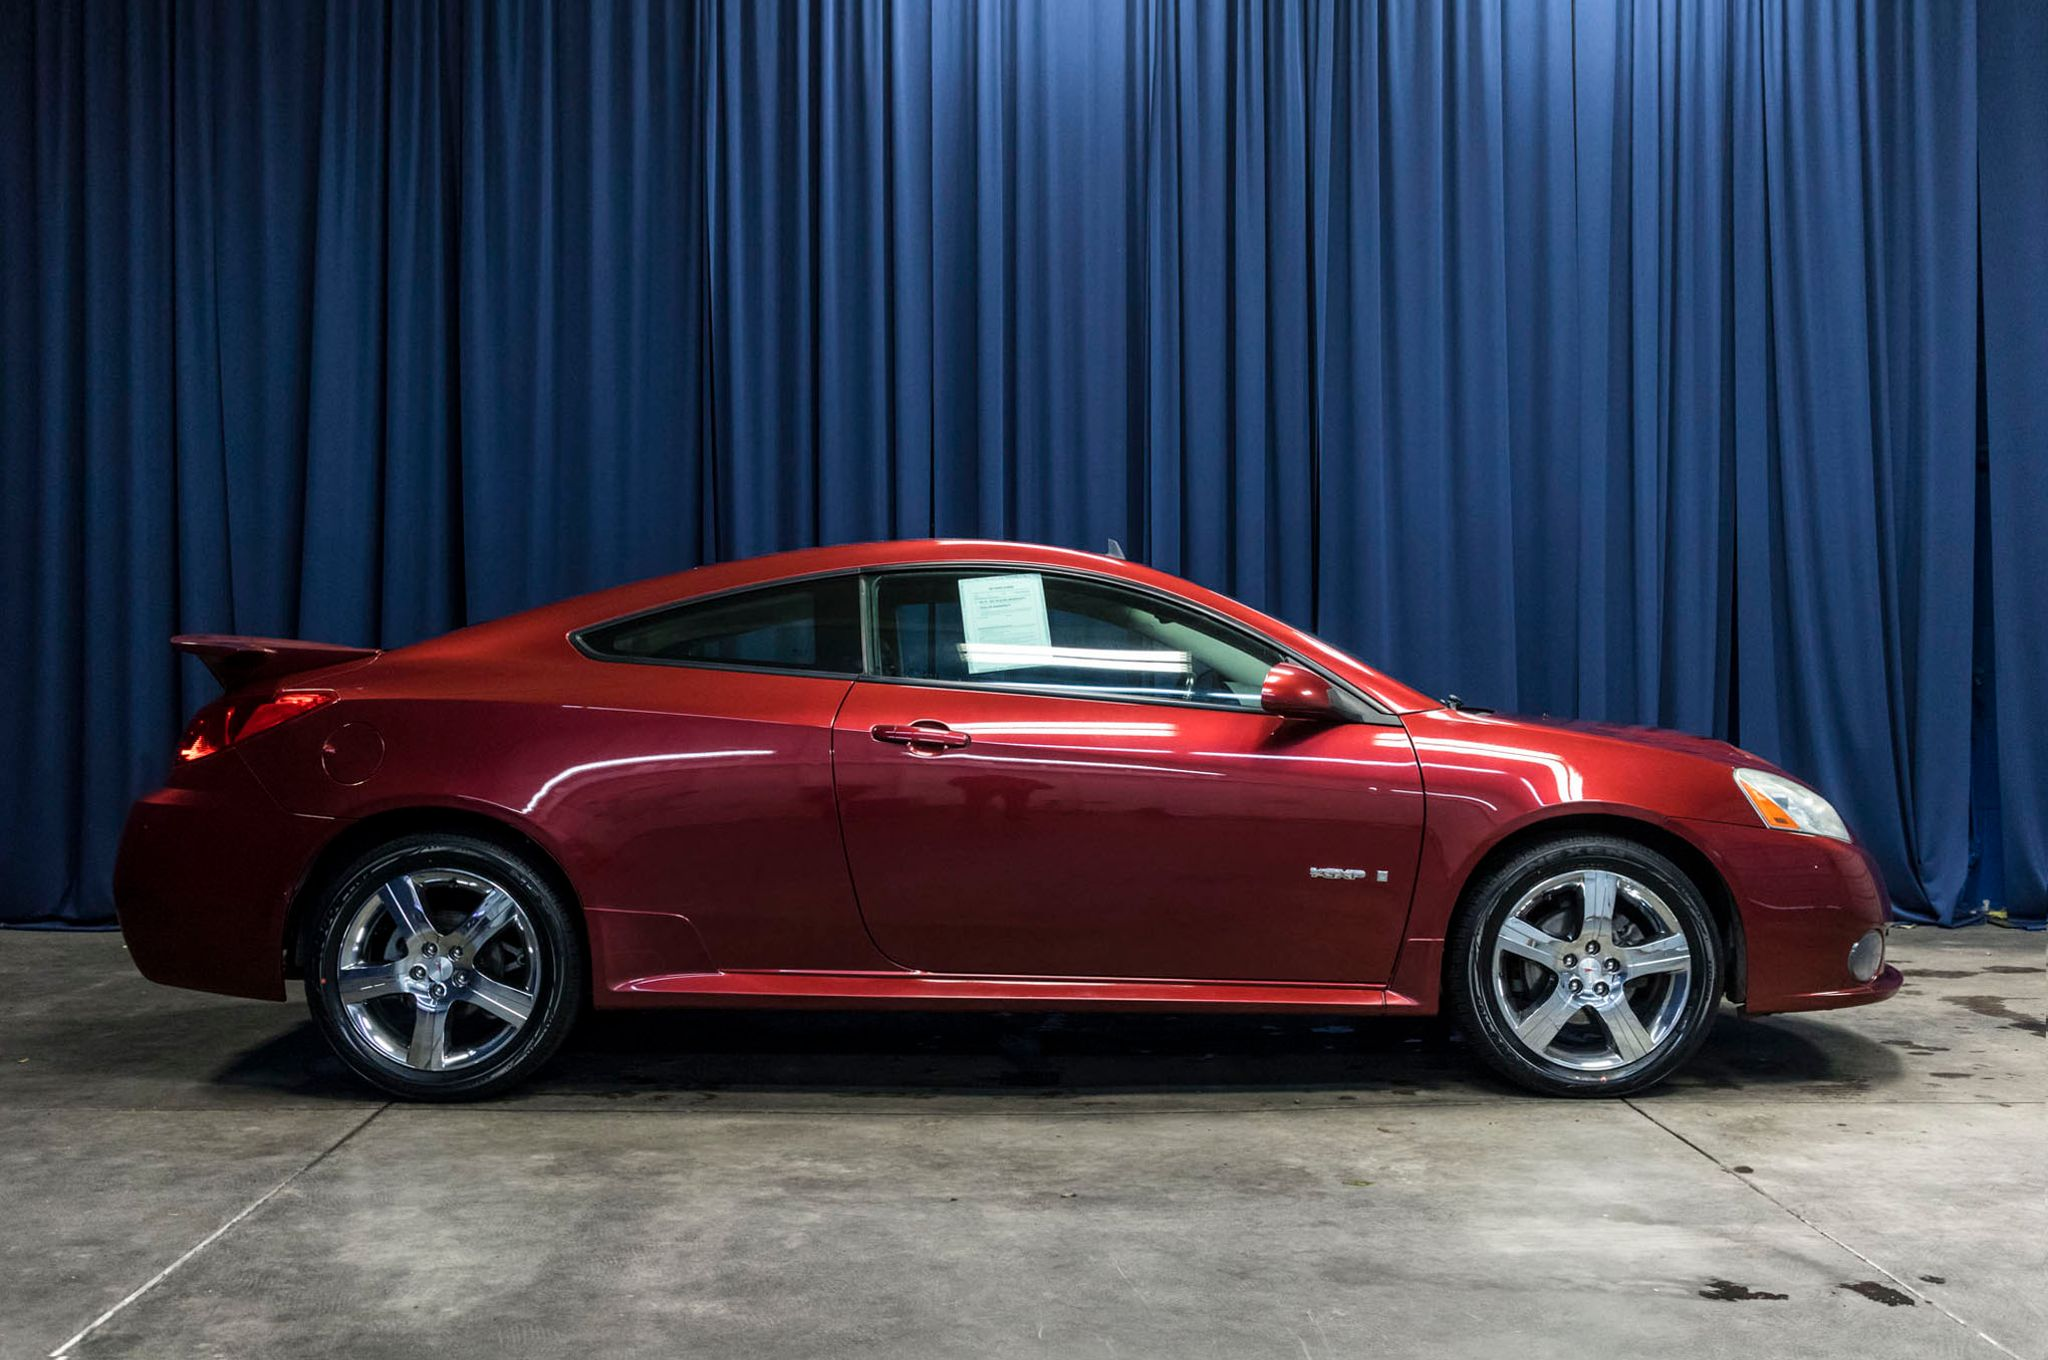 Used 2008 Pontiac G6 GXP FWD Coupe For Sale - 44440A